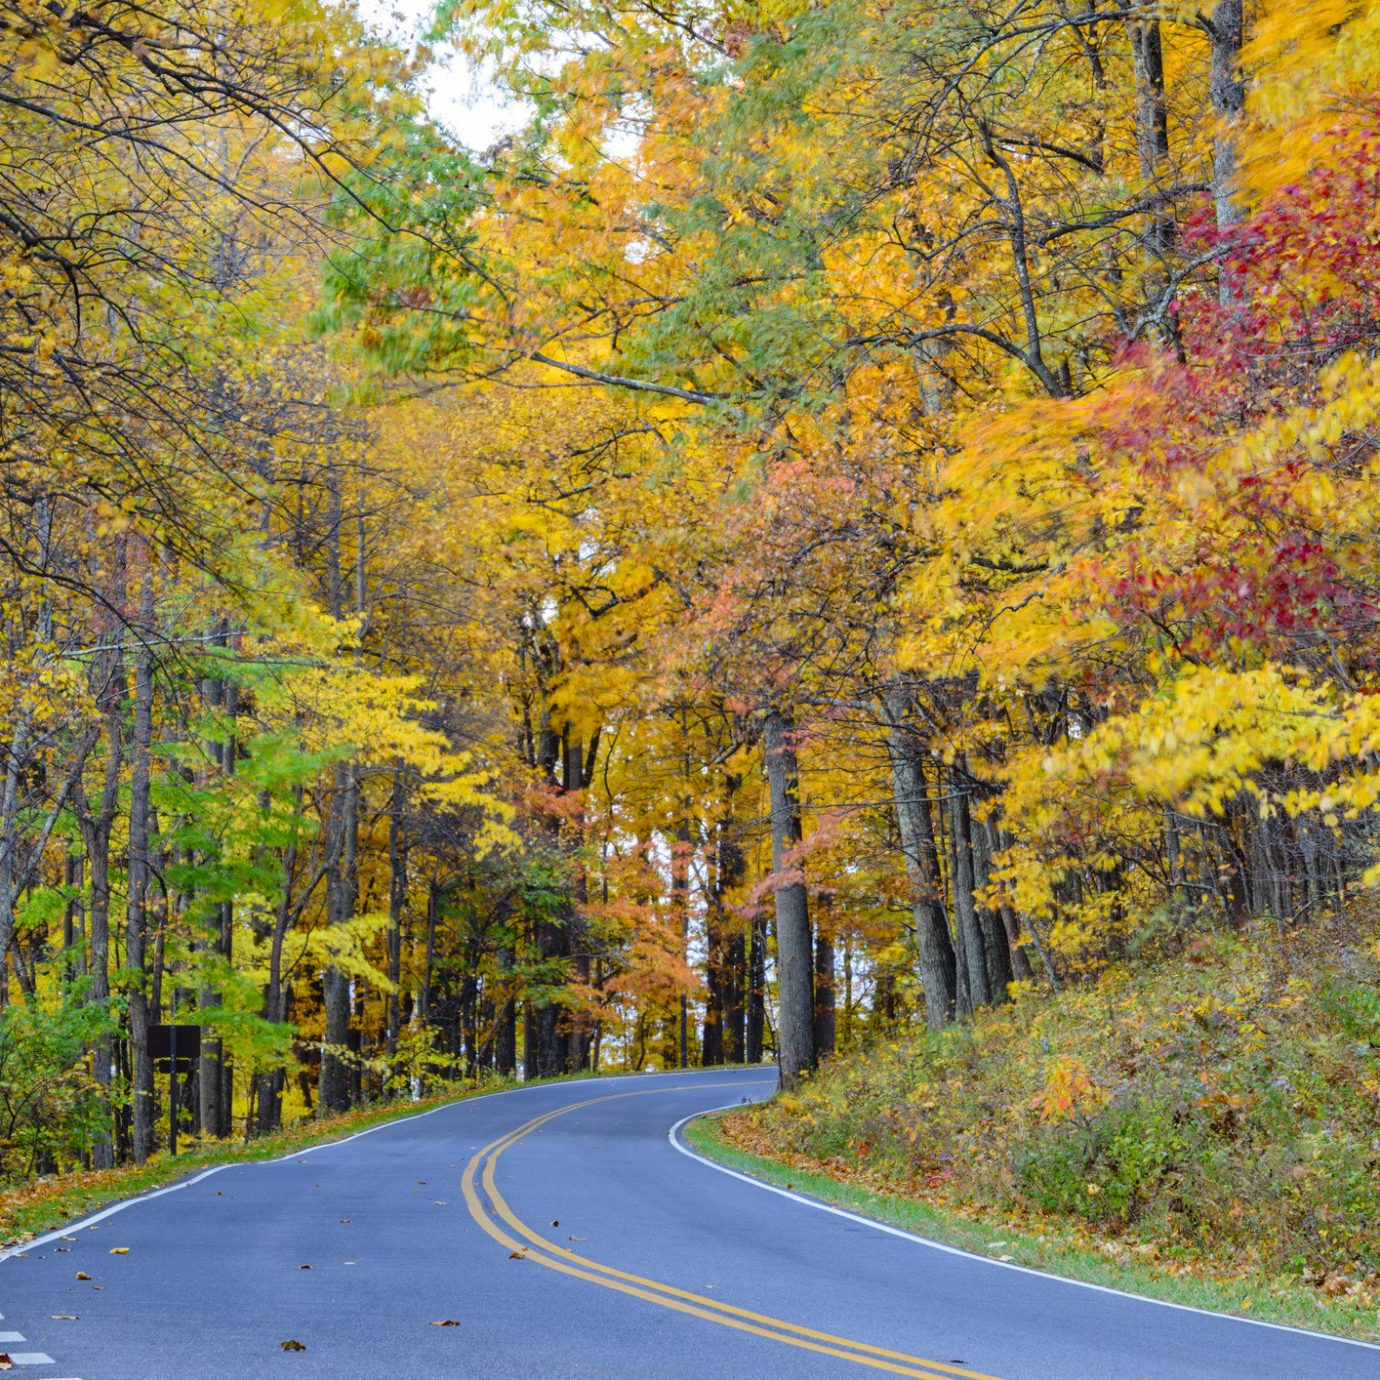 Outdoors + Adventure Road Trips Trip Ideas tree outdoor grass Nature leaf autumn yellow road woody plant deciduous path temperate broadleaf and mixed forest woodland Forest plant way biome landscape sunlight state park maple tree sky wooded traveling surrounded